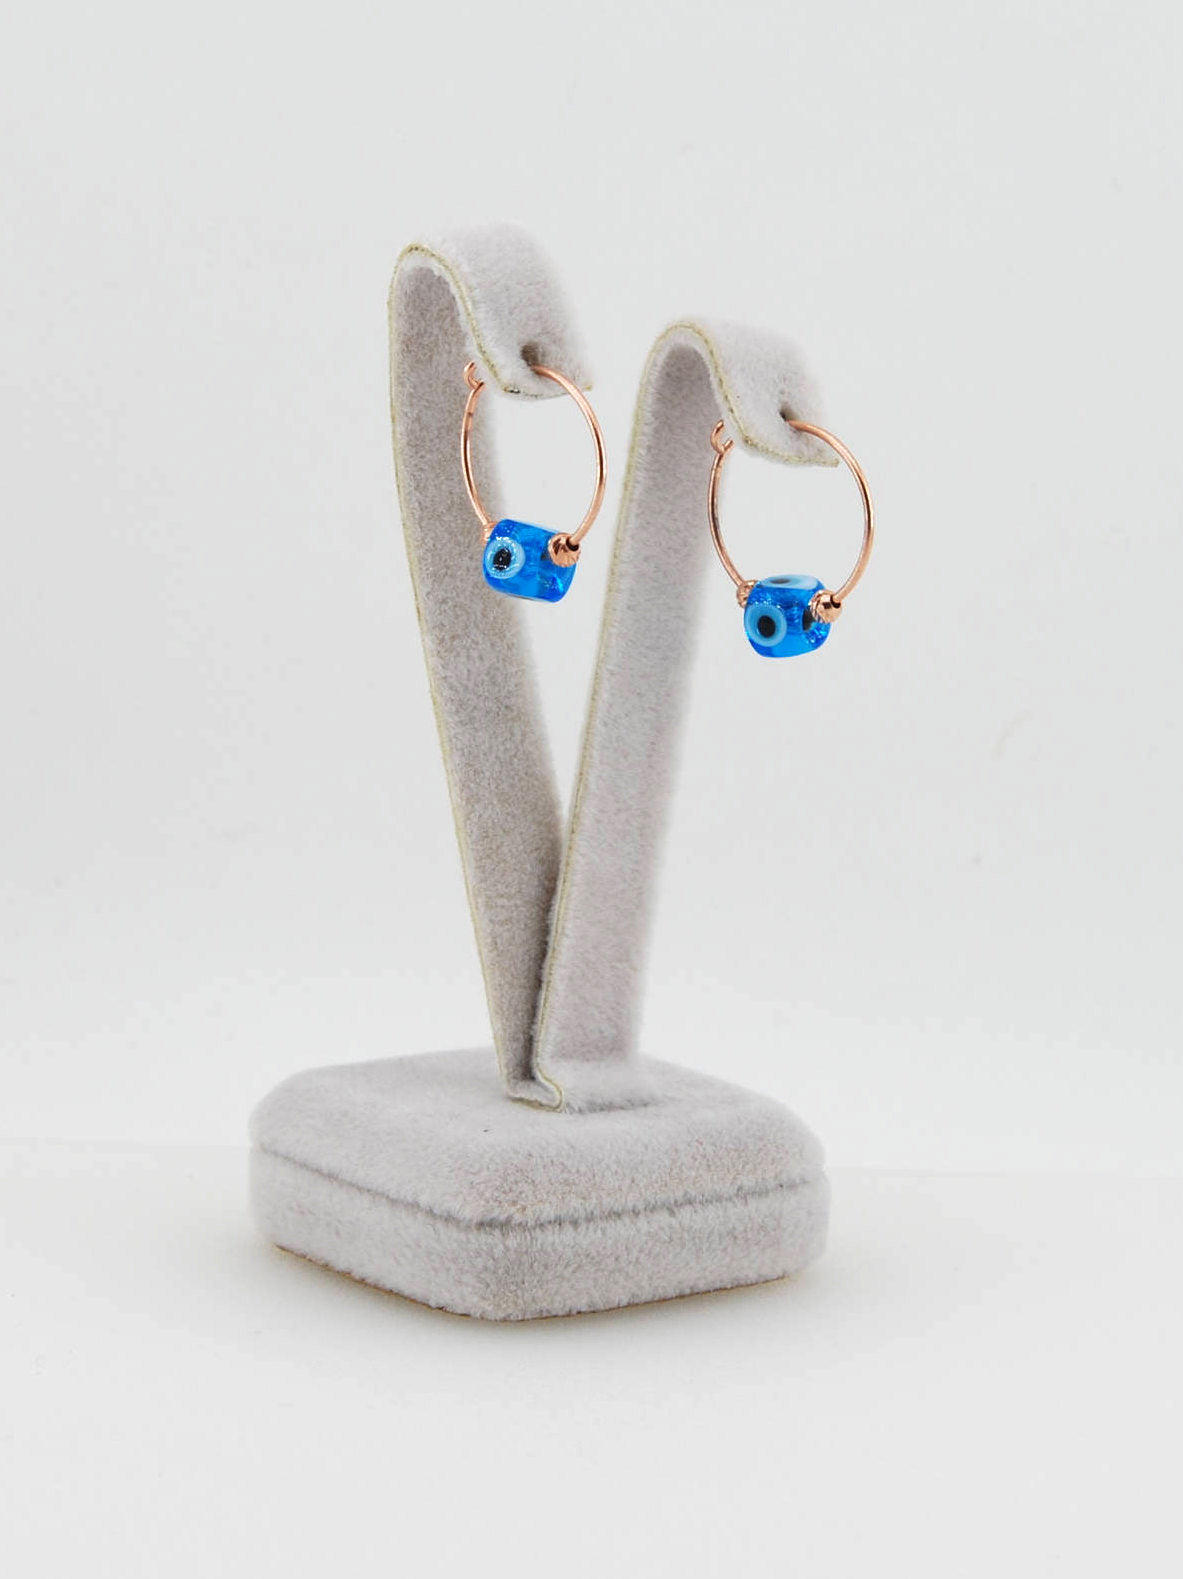 Handmade Minimalist Ear Cuffs, Evil Eye Earrings - Babazen